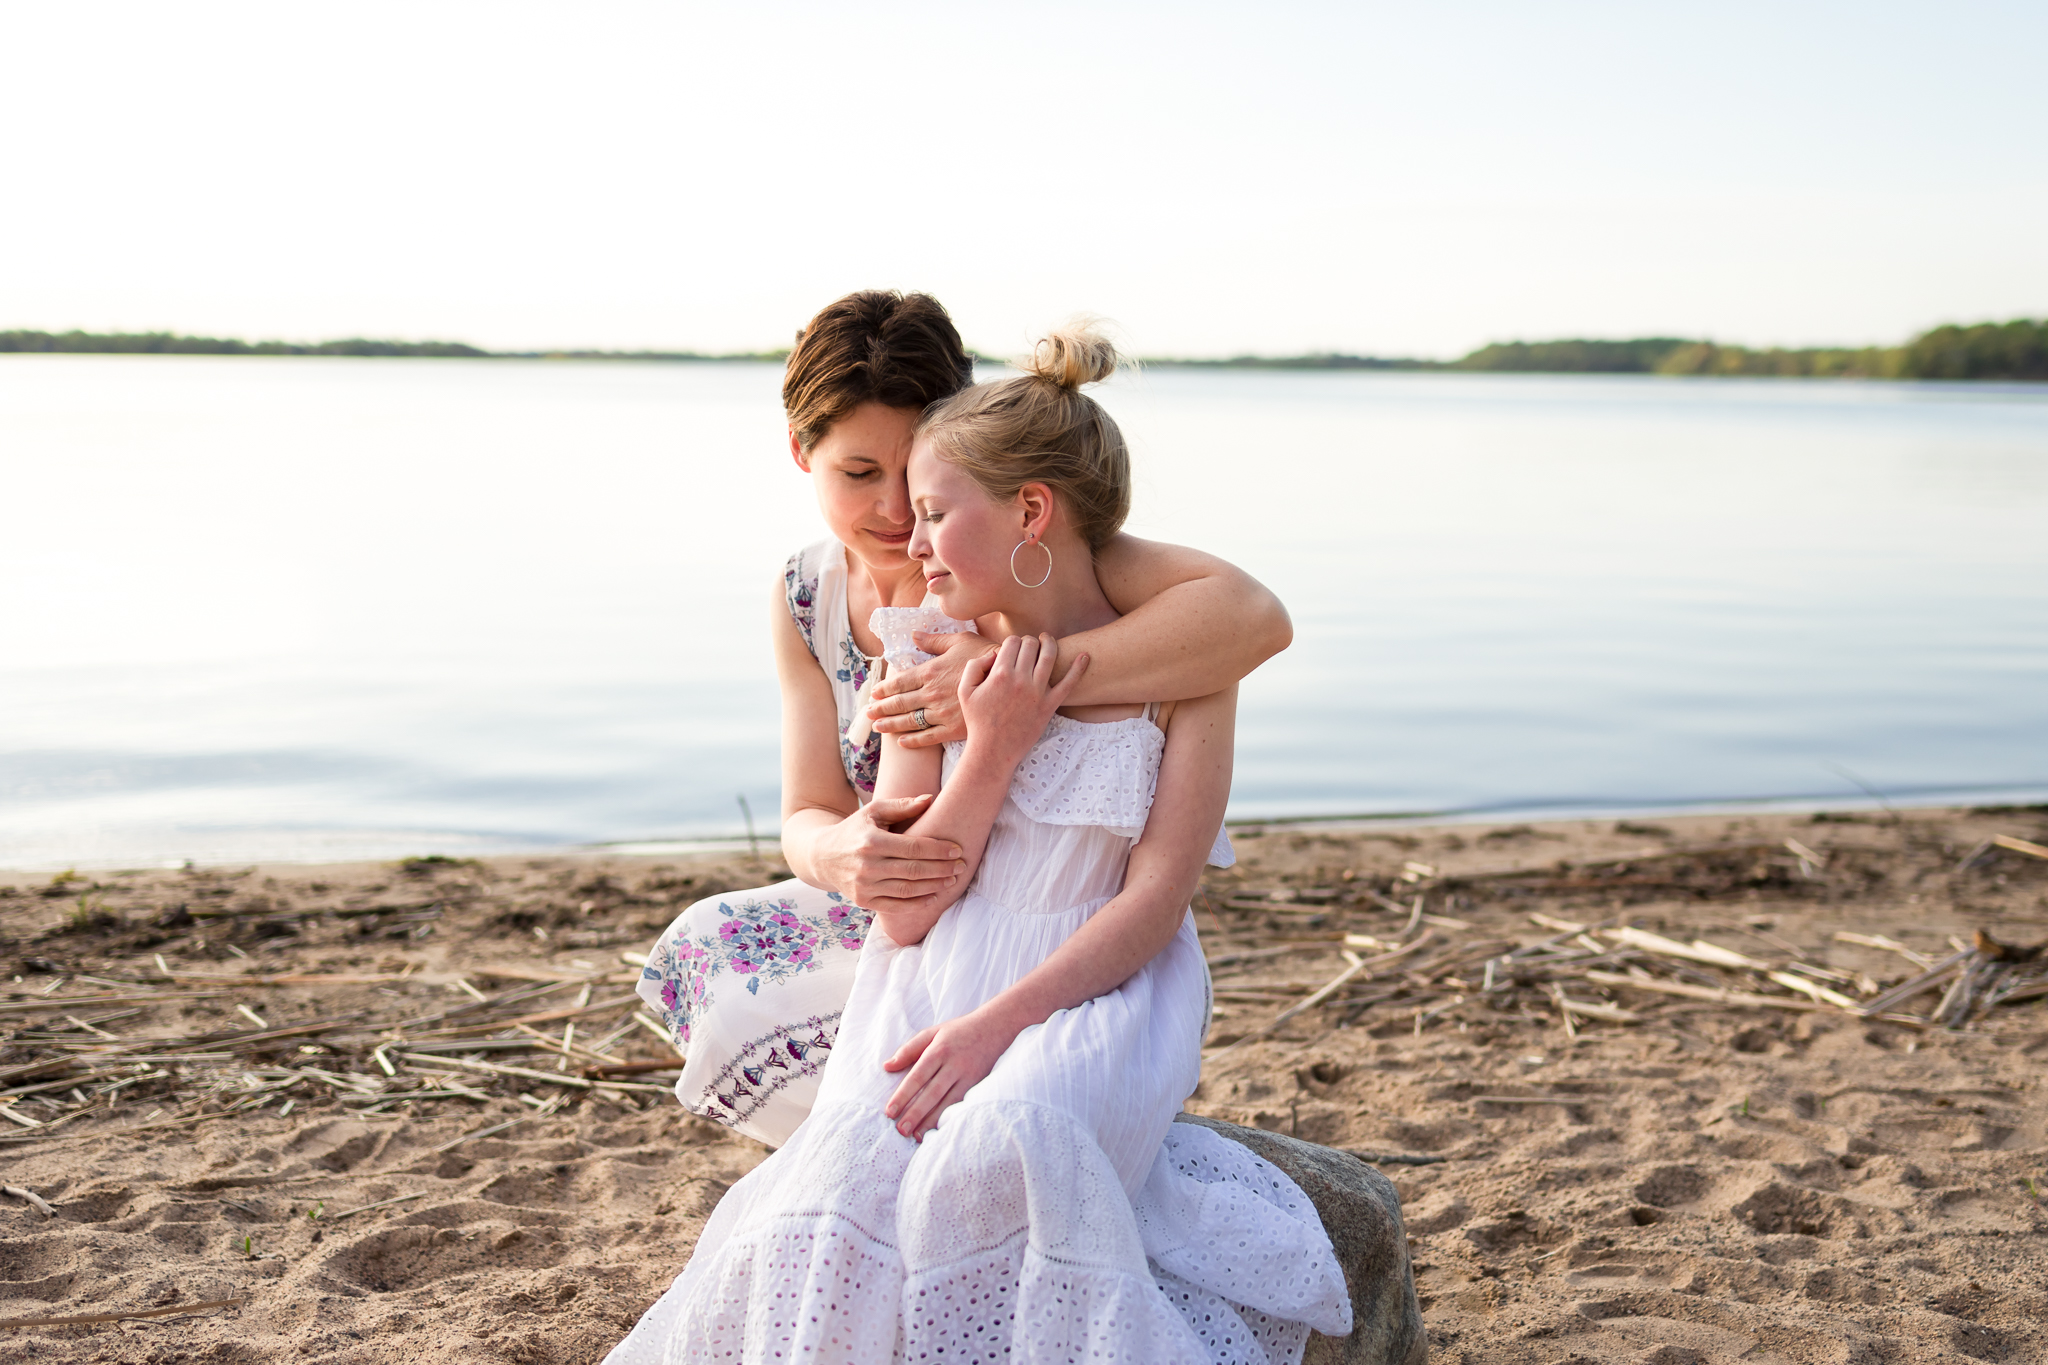 mom hugging her daughter by a lake - AMG Photography